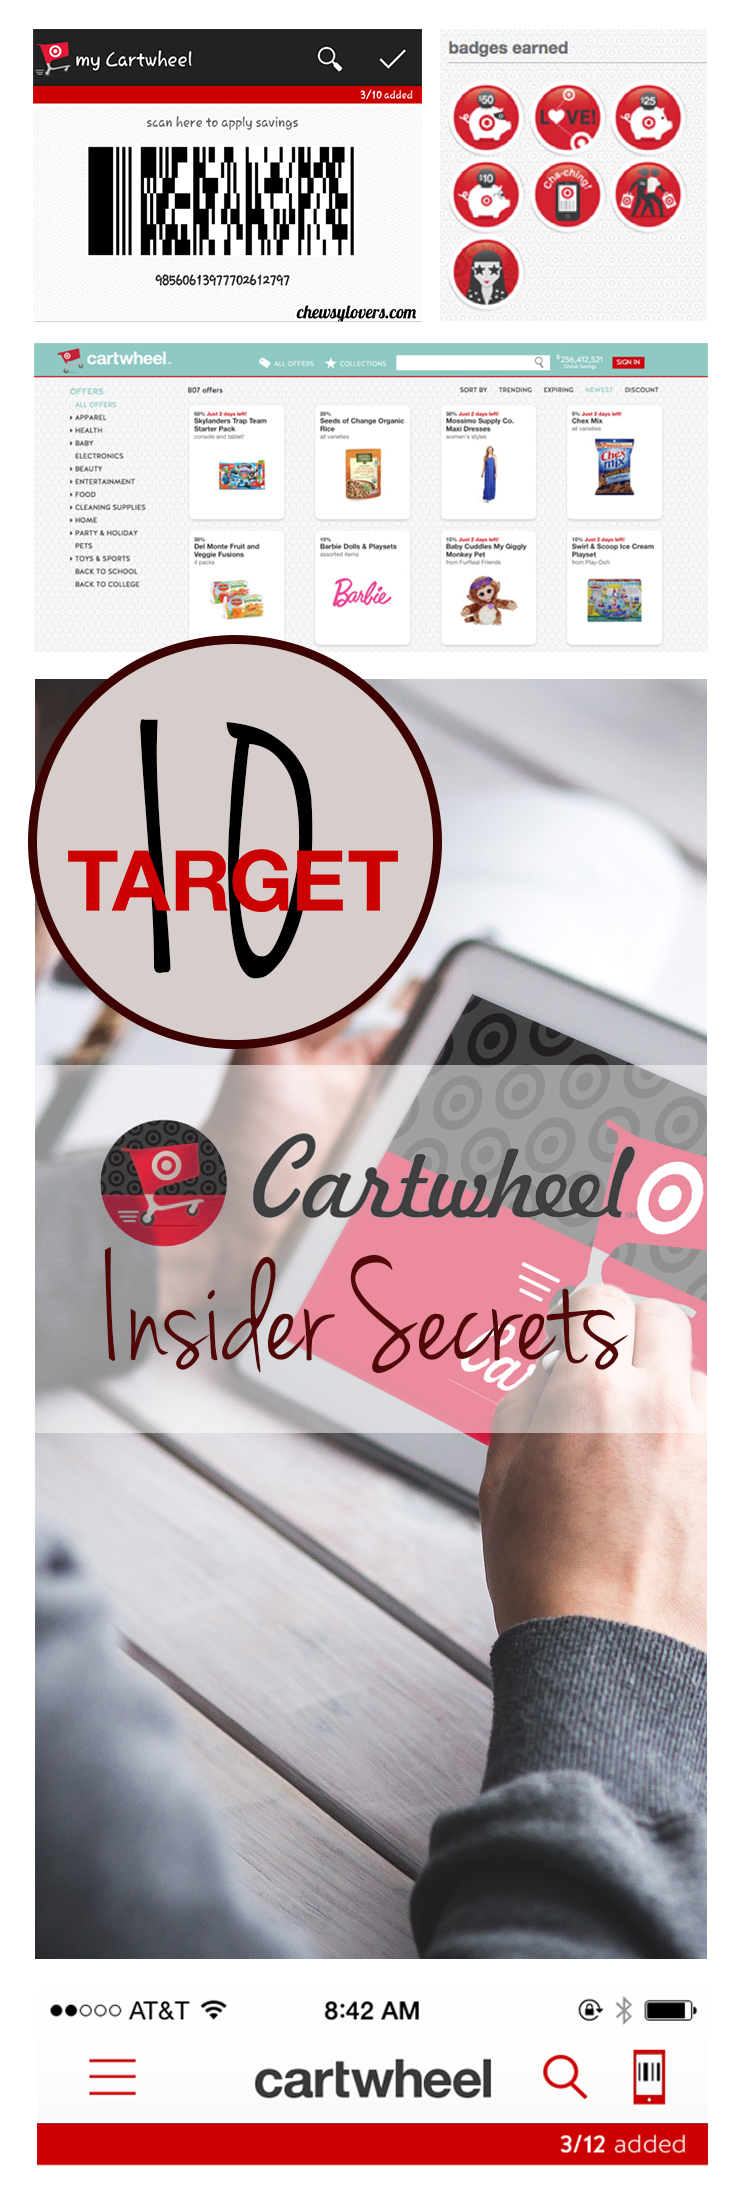 Target, how to save money at Target, saving money, money saving tips, frugal living, frugal hacks, popular pin, Target insider secrets.